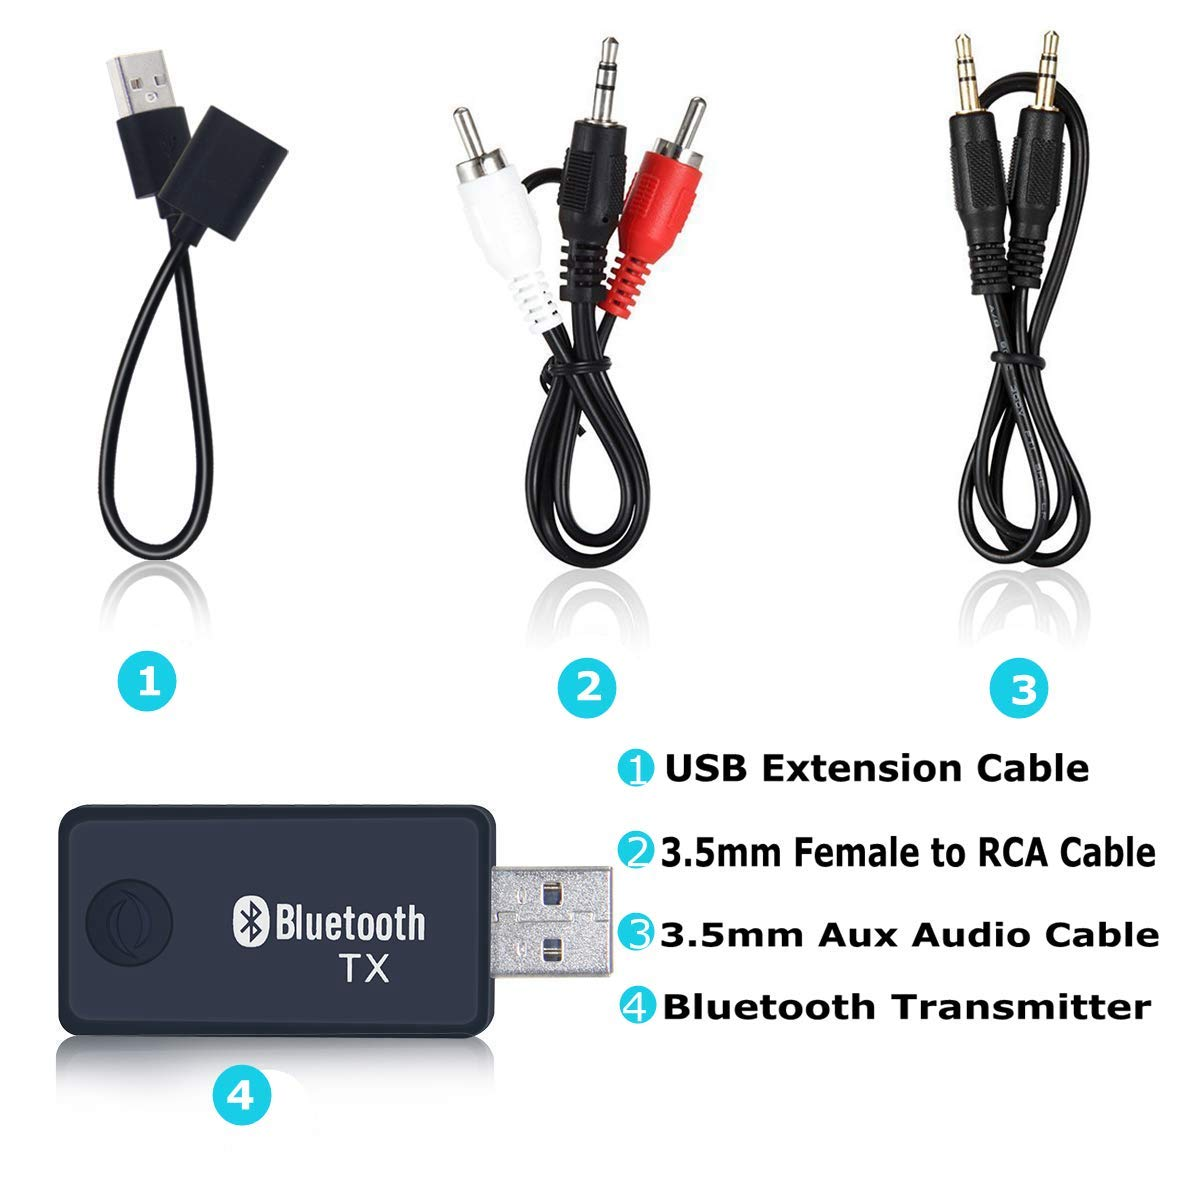 Transmisor Bluetooth USB de 3,5 mm para TV iPod alimentaci/ón por USB MP3//MP4 Enchufe y reproducci/ón Annbrist